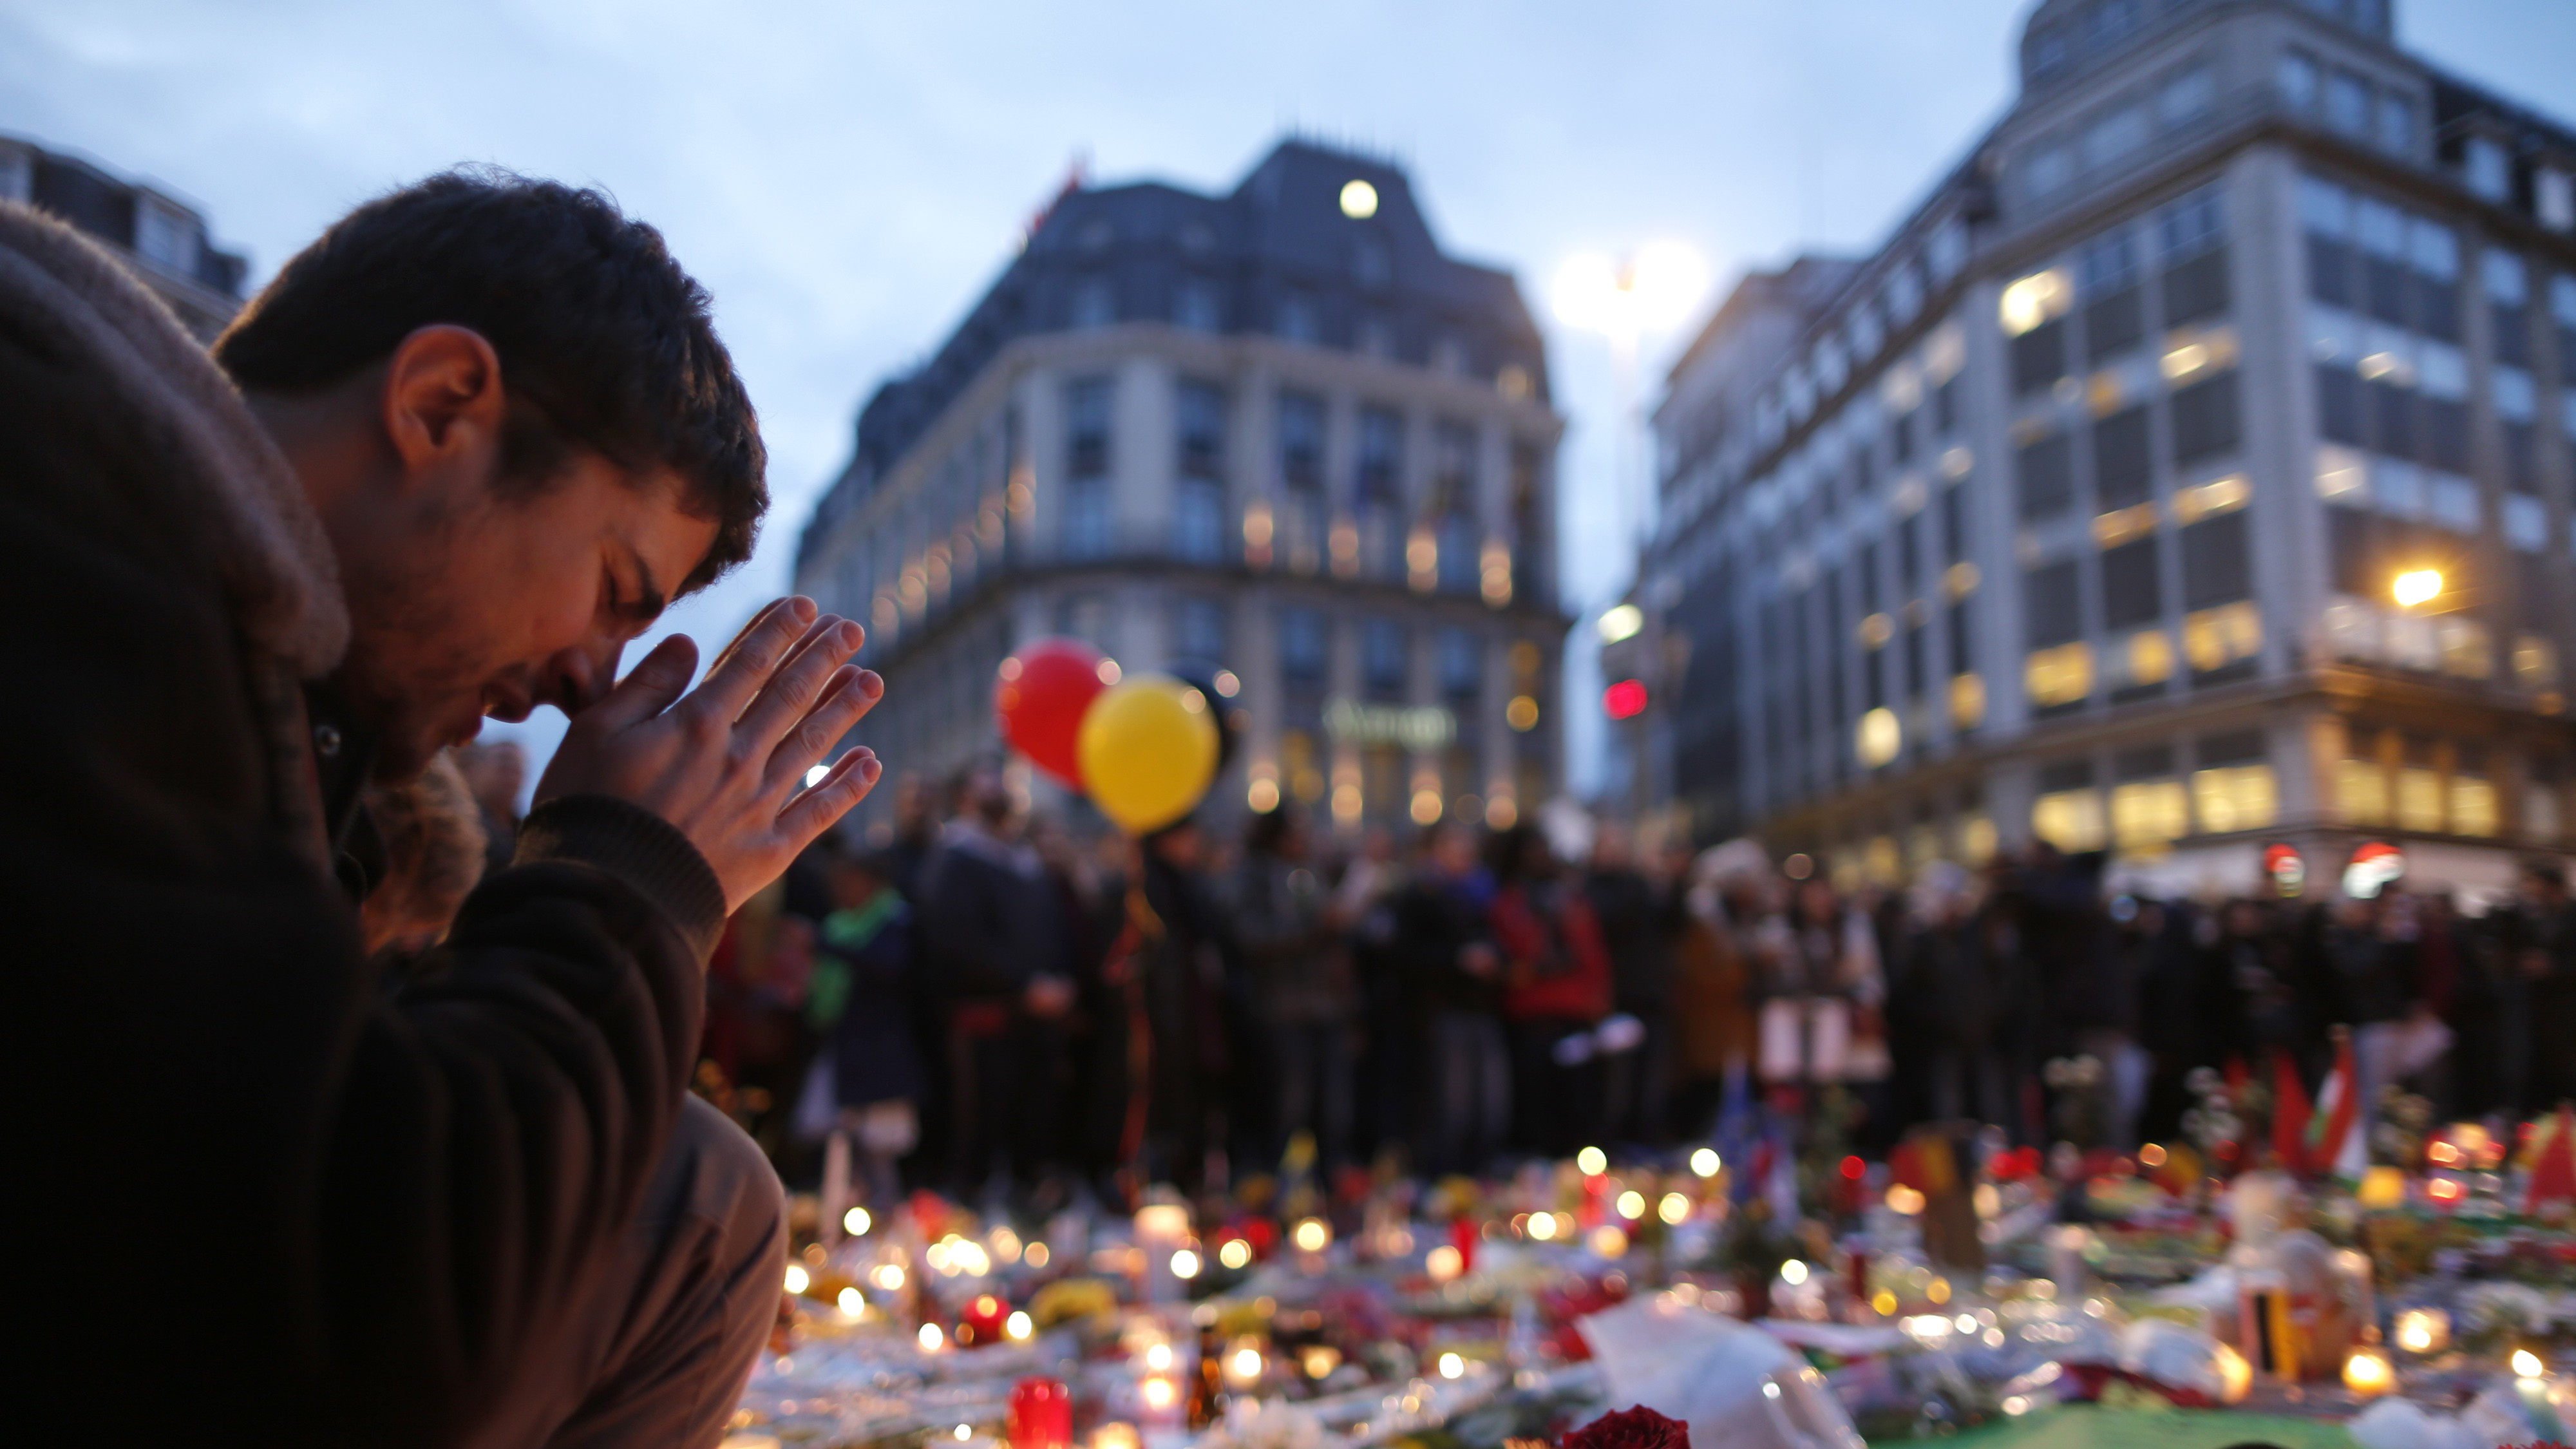 A man attends a memorial gathering near the old stock exchange in Brussels following bomb attacks in Brussels, Belgium